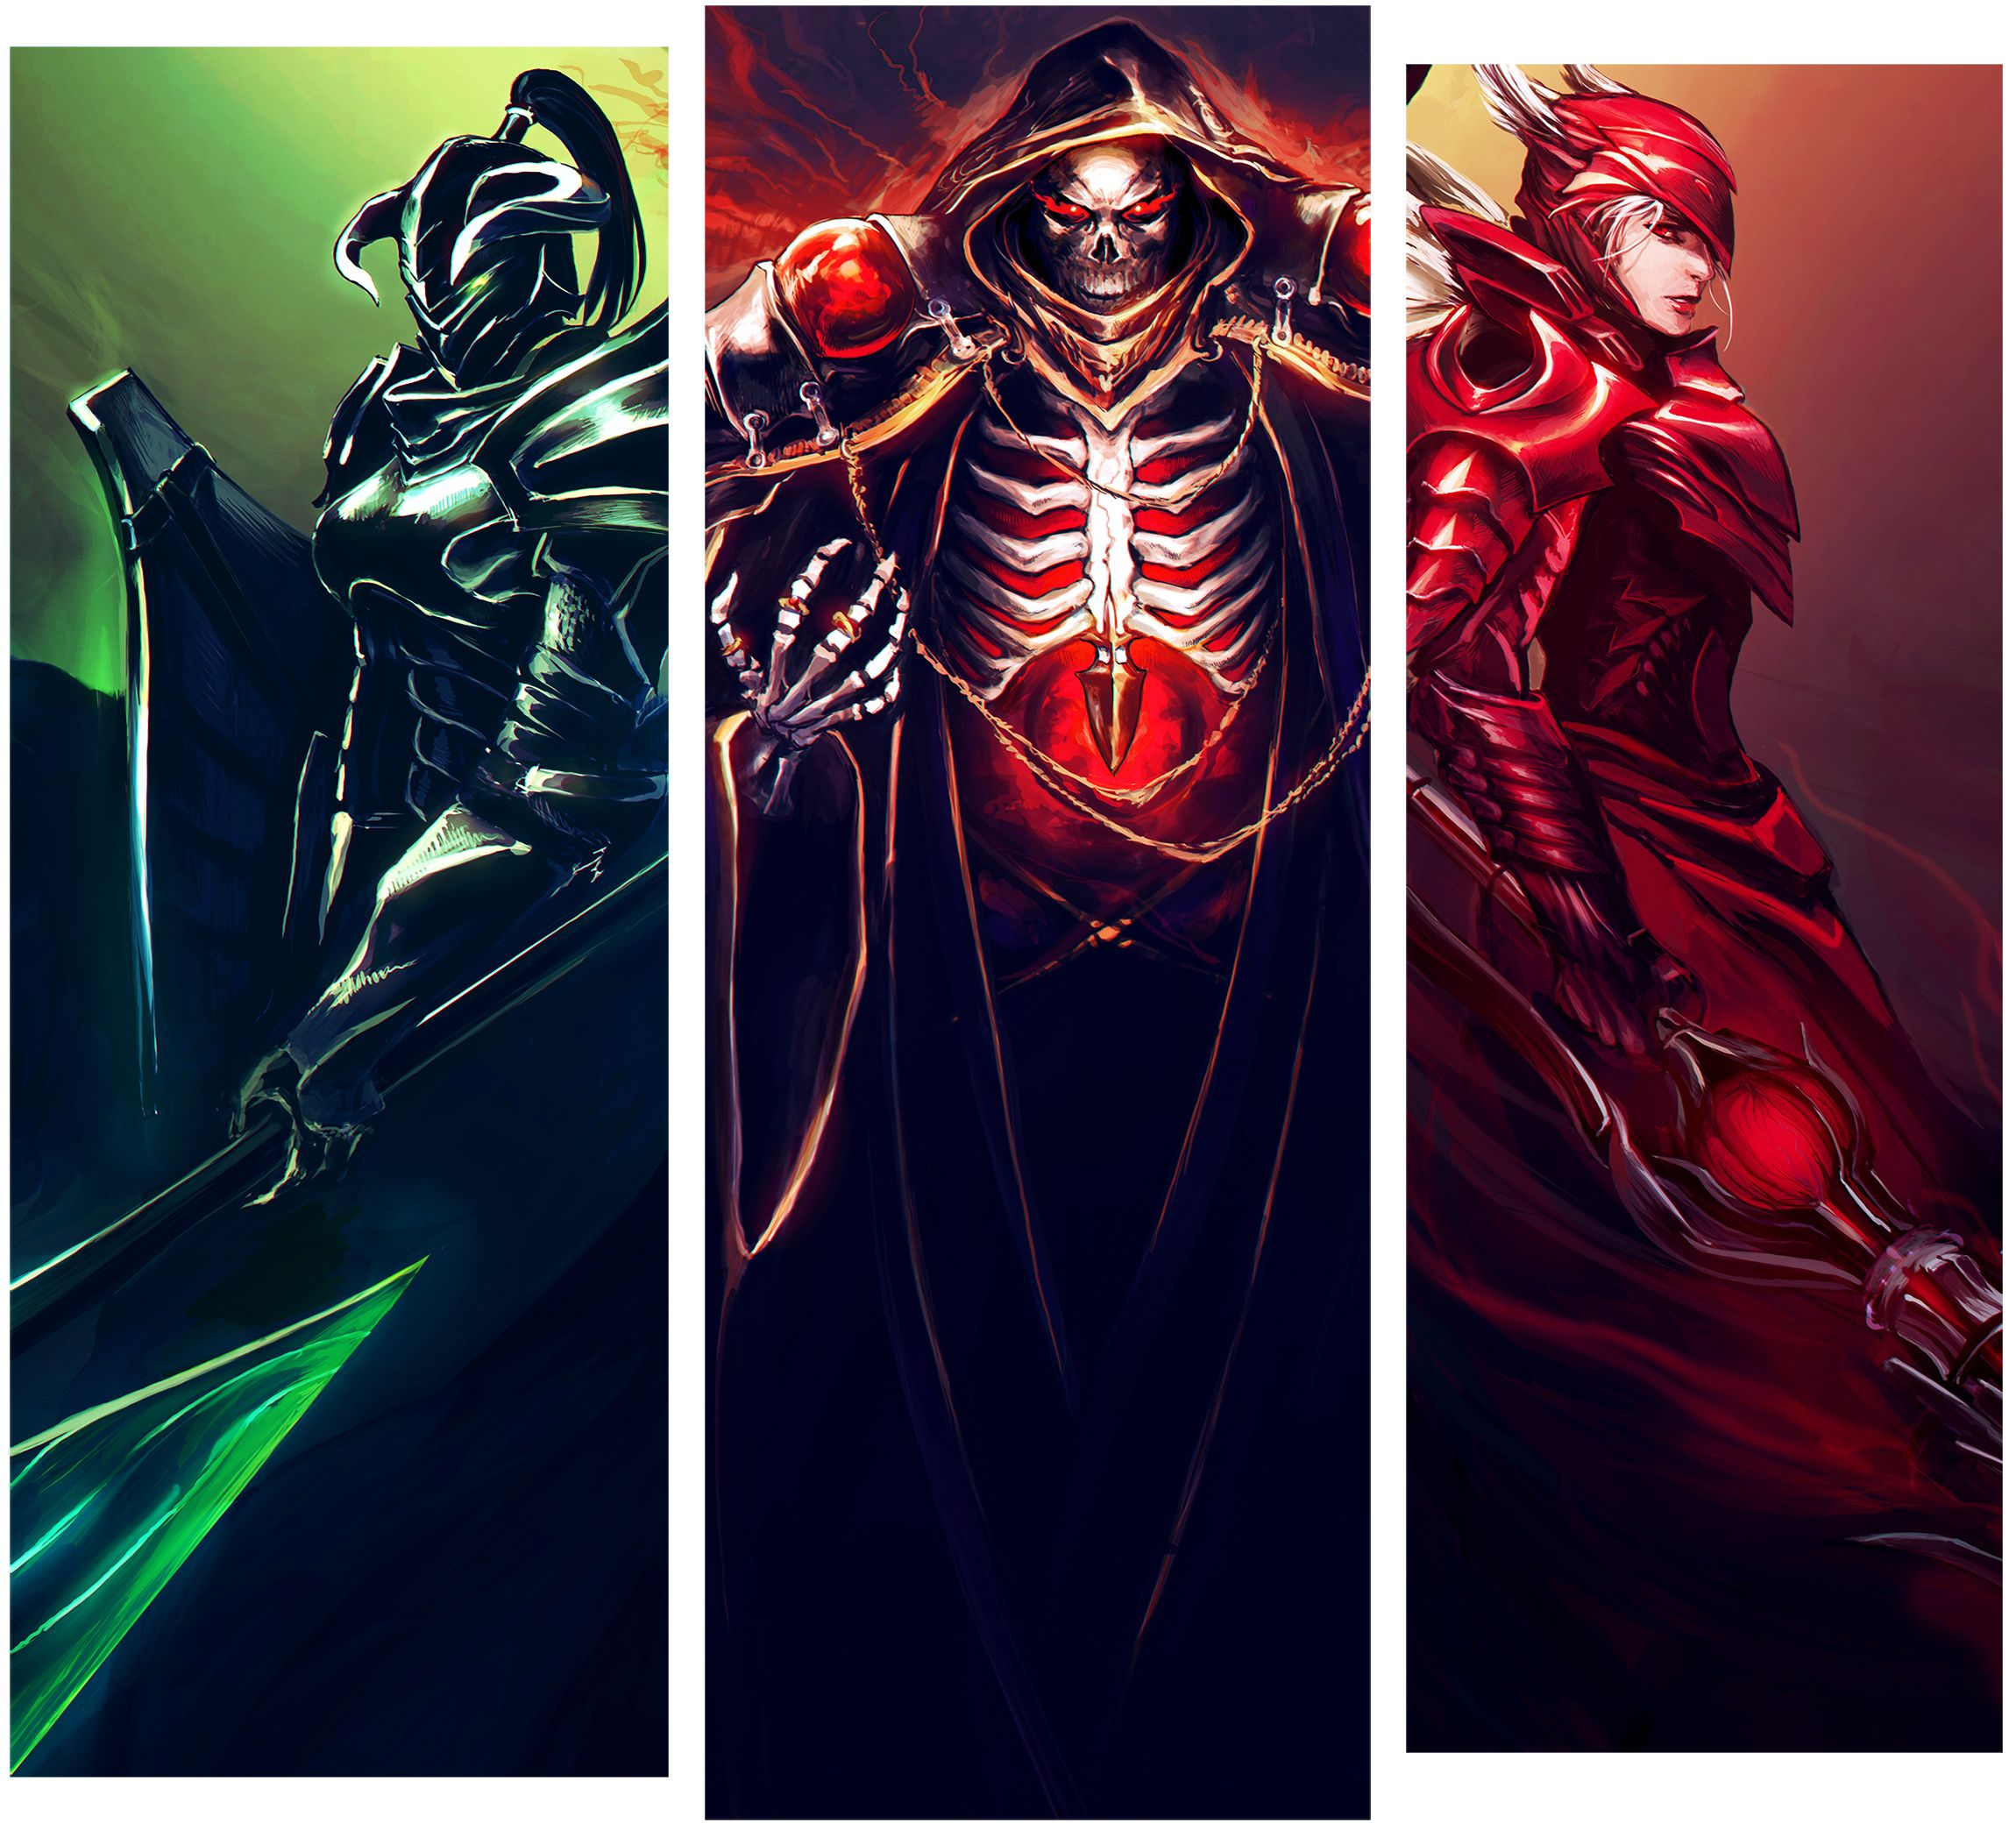 Overlord Characters Albedo Ainz Ooal Gown Shalltear Bloodfallen Anime Films Anime Wallpaper Anime Movies